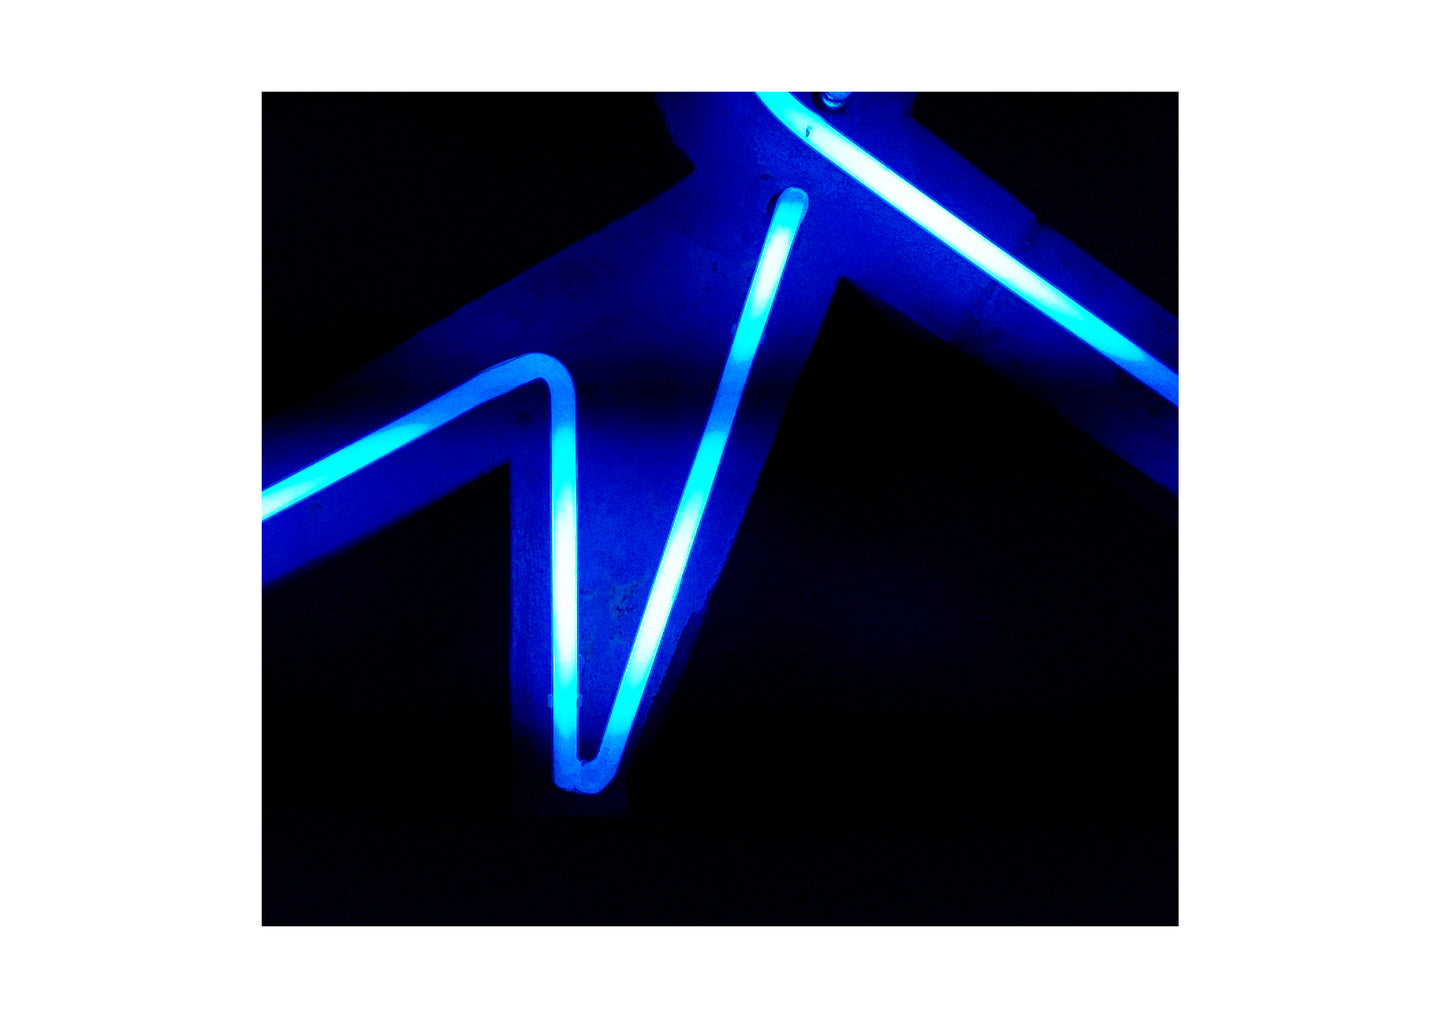 'Electric 2' Limited Edition Giclée Neon Print by Stephen Pick